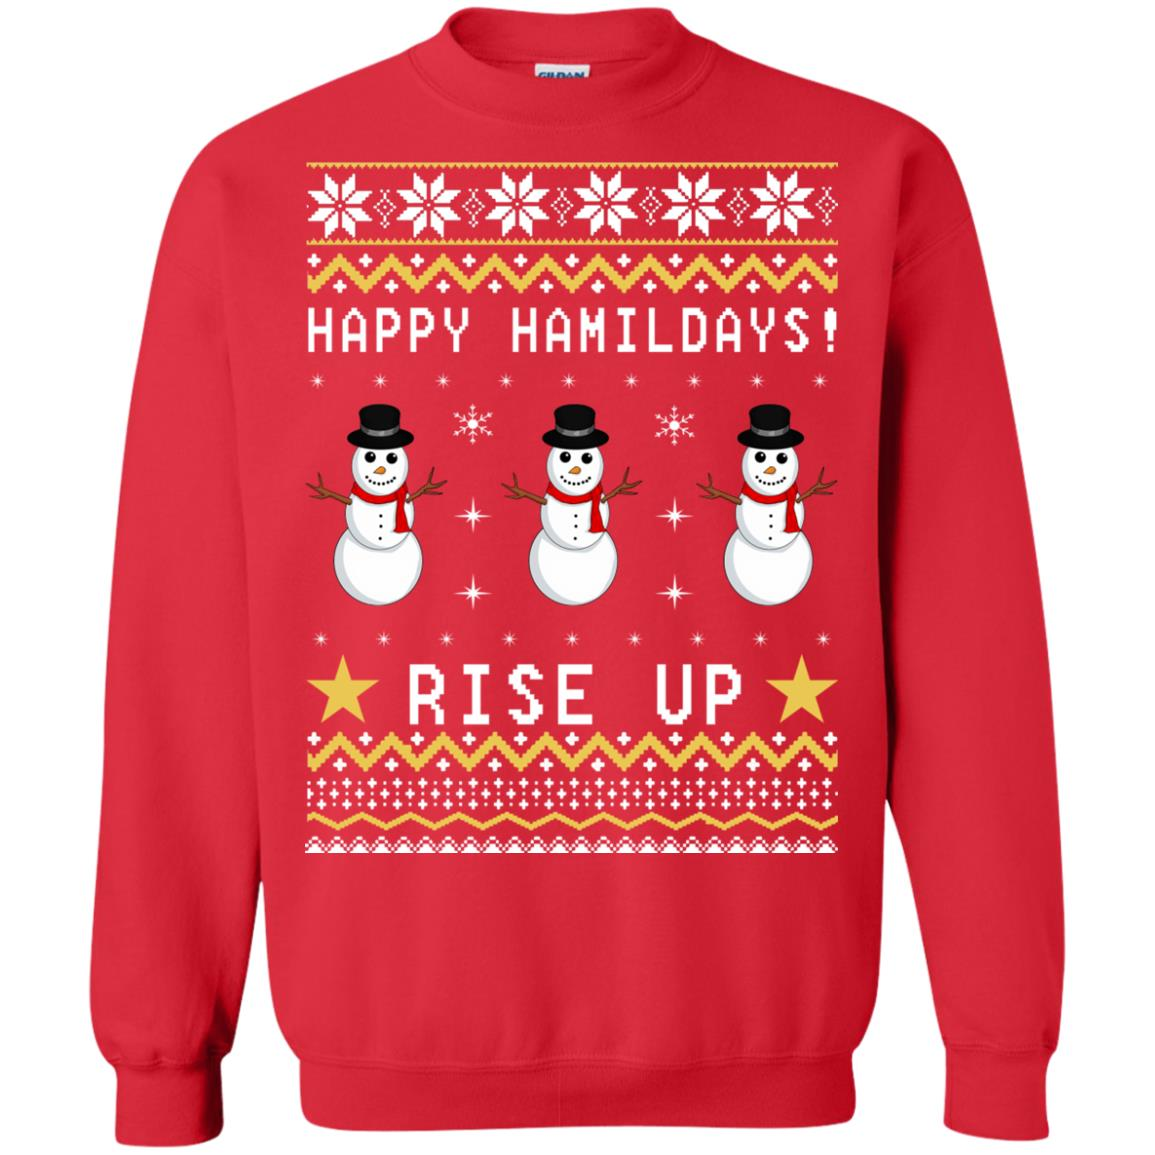 Happy Hamildays Rise Up Christmas Ugly Sweater, Shirt - image 3398